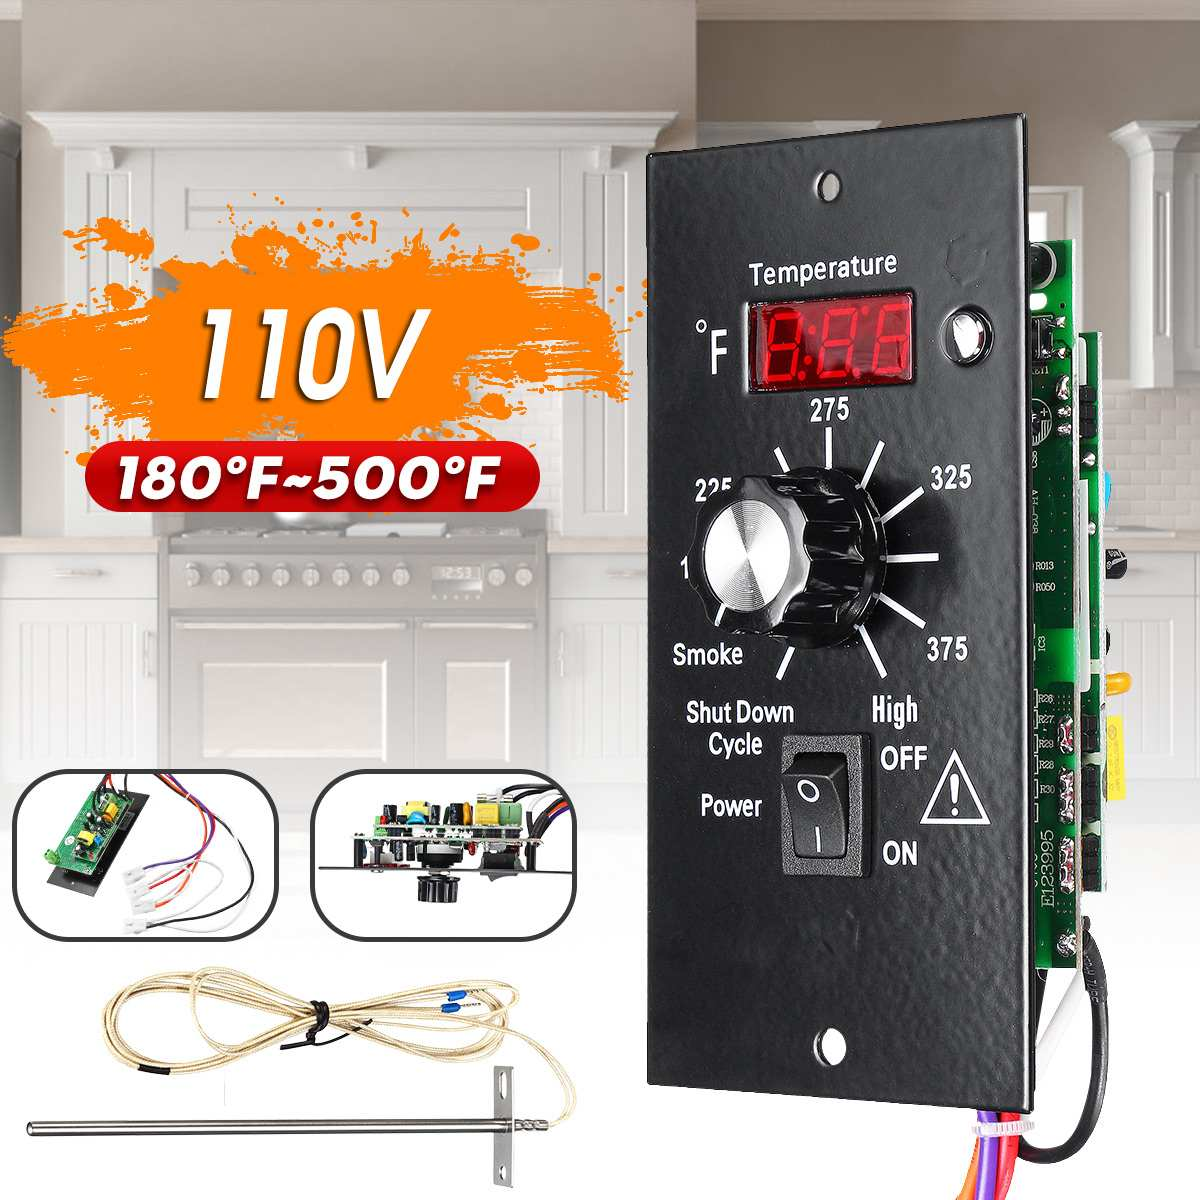 Digital Thermostat Control Board+Probe For Traeger Wood Pellet Grills #BAC236 Display Fireplace Parts